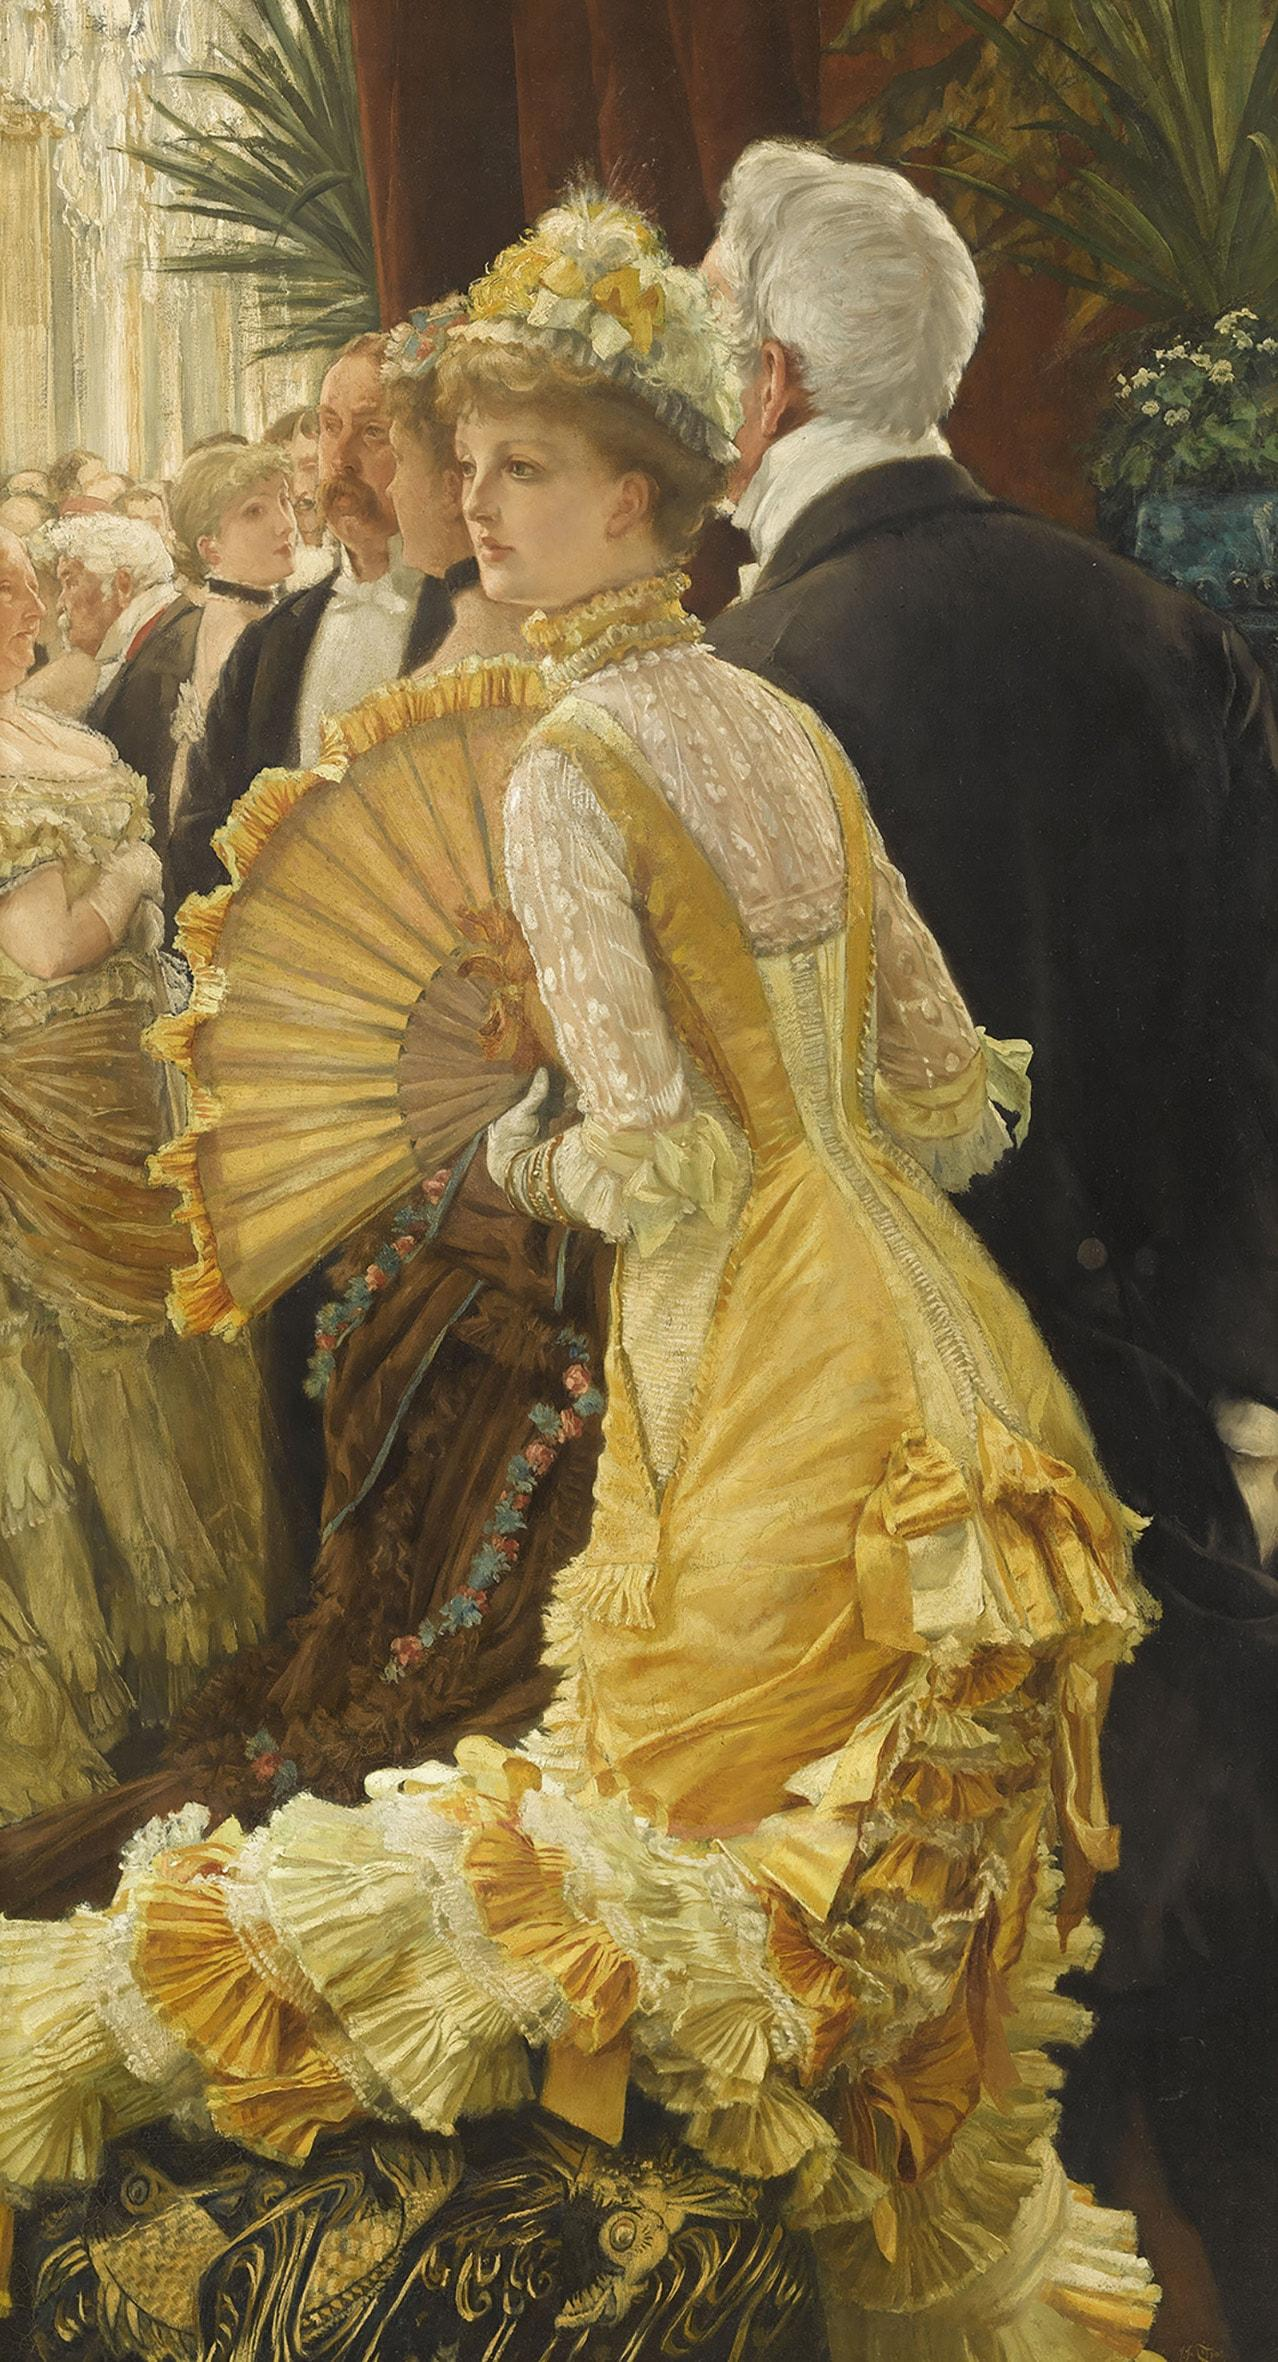 http://upload.wikimedia.org/wikipedia/commons/9/91/James_Tissot_-_The_Ball.jpg